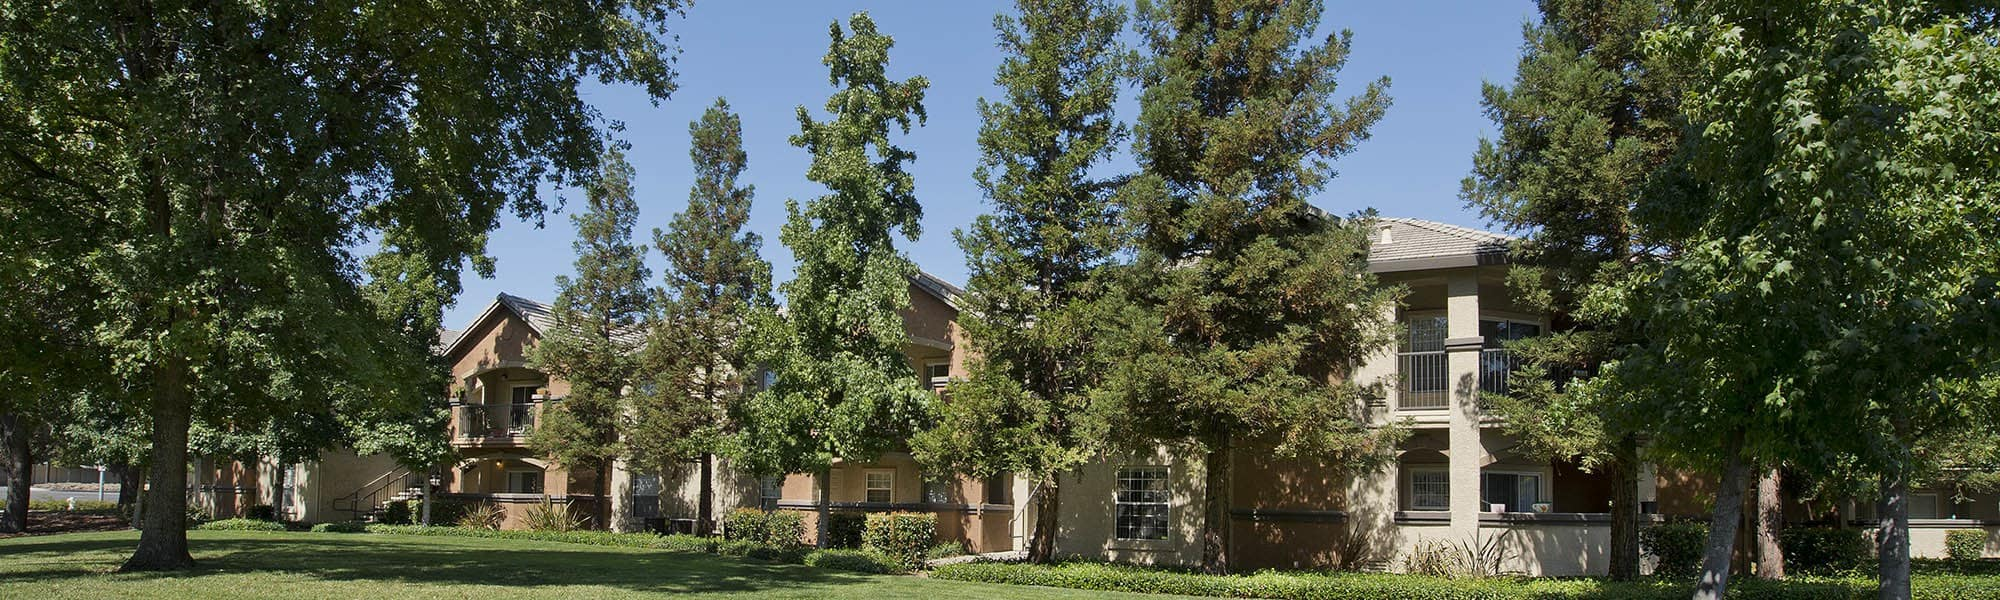 Learn about our neighborhood at River Oaks Apartment Homes in Vacaville, CA on our website